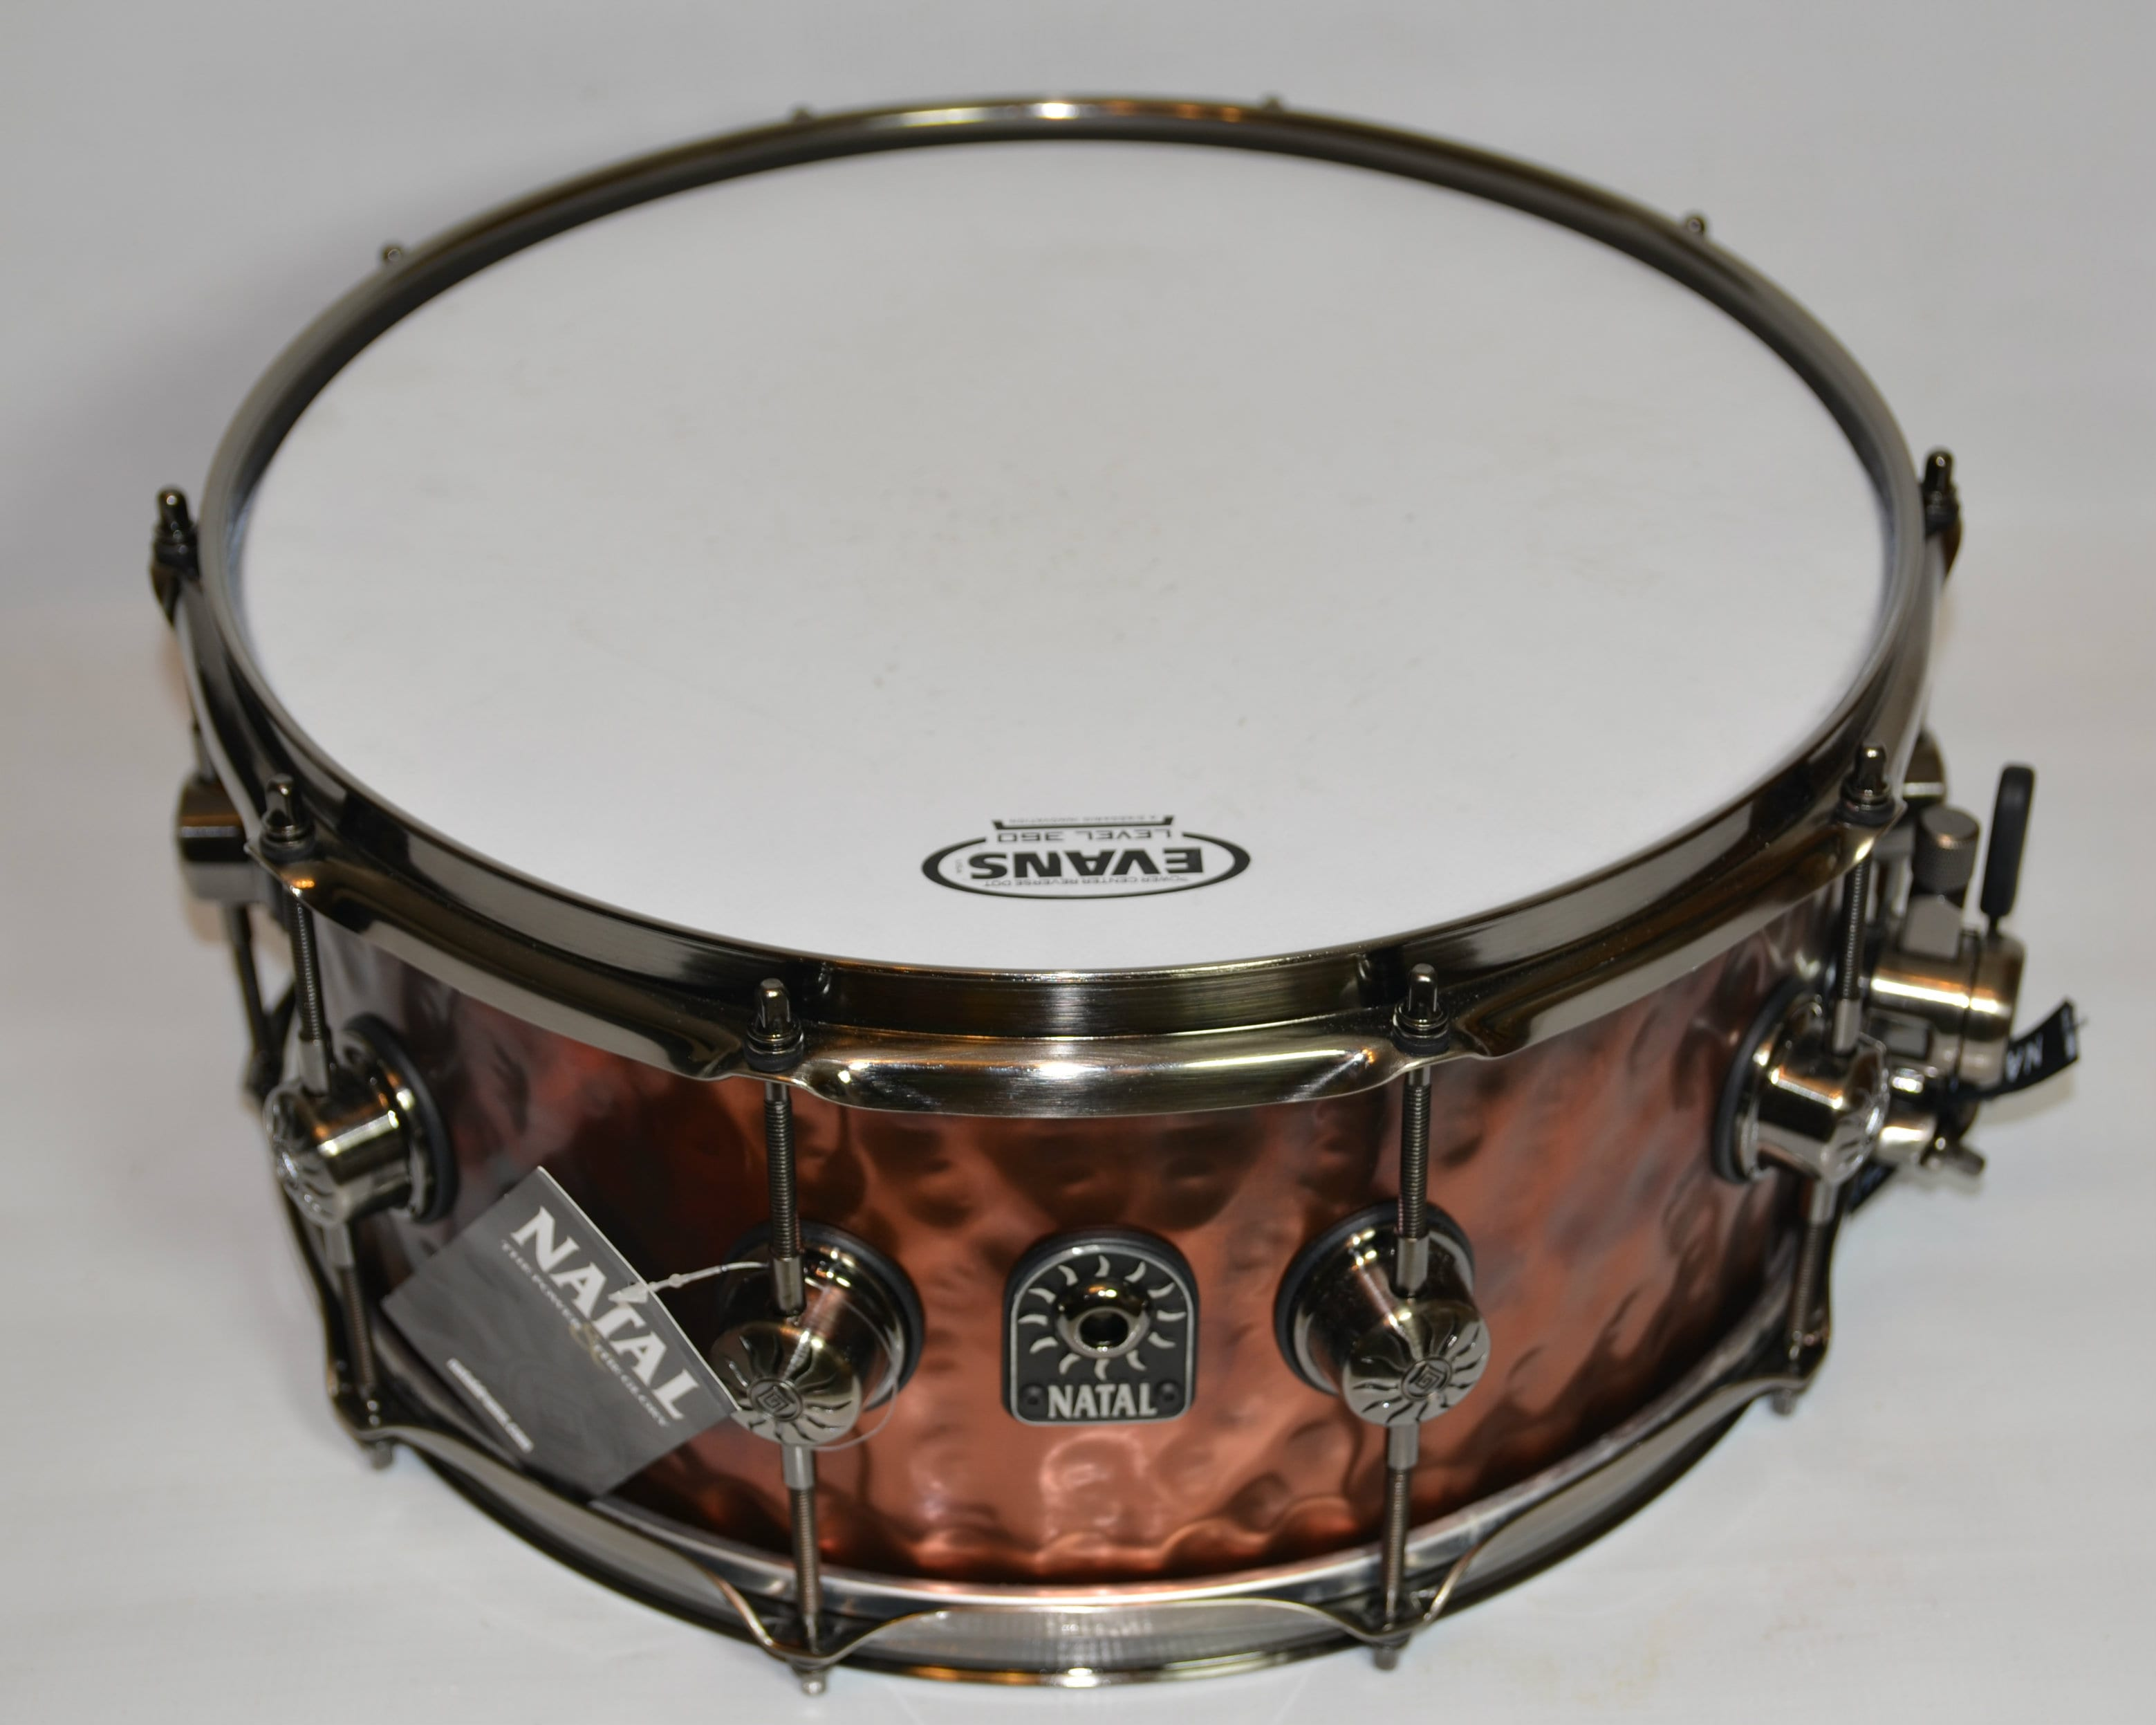 Natal Snare Drum Overall look